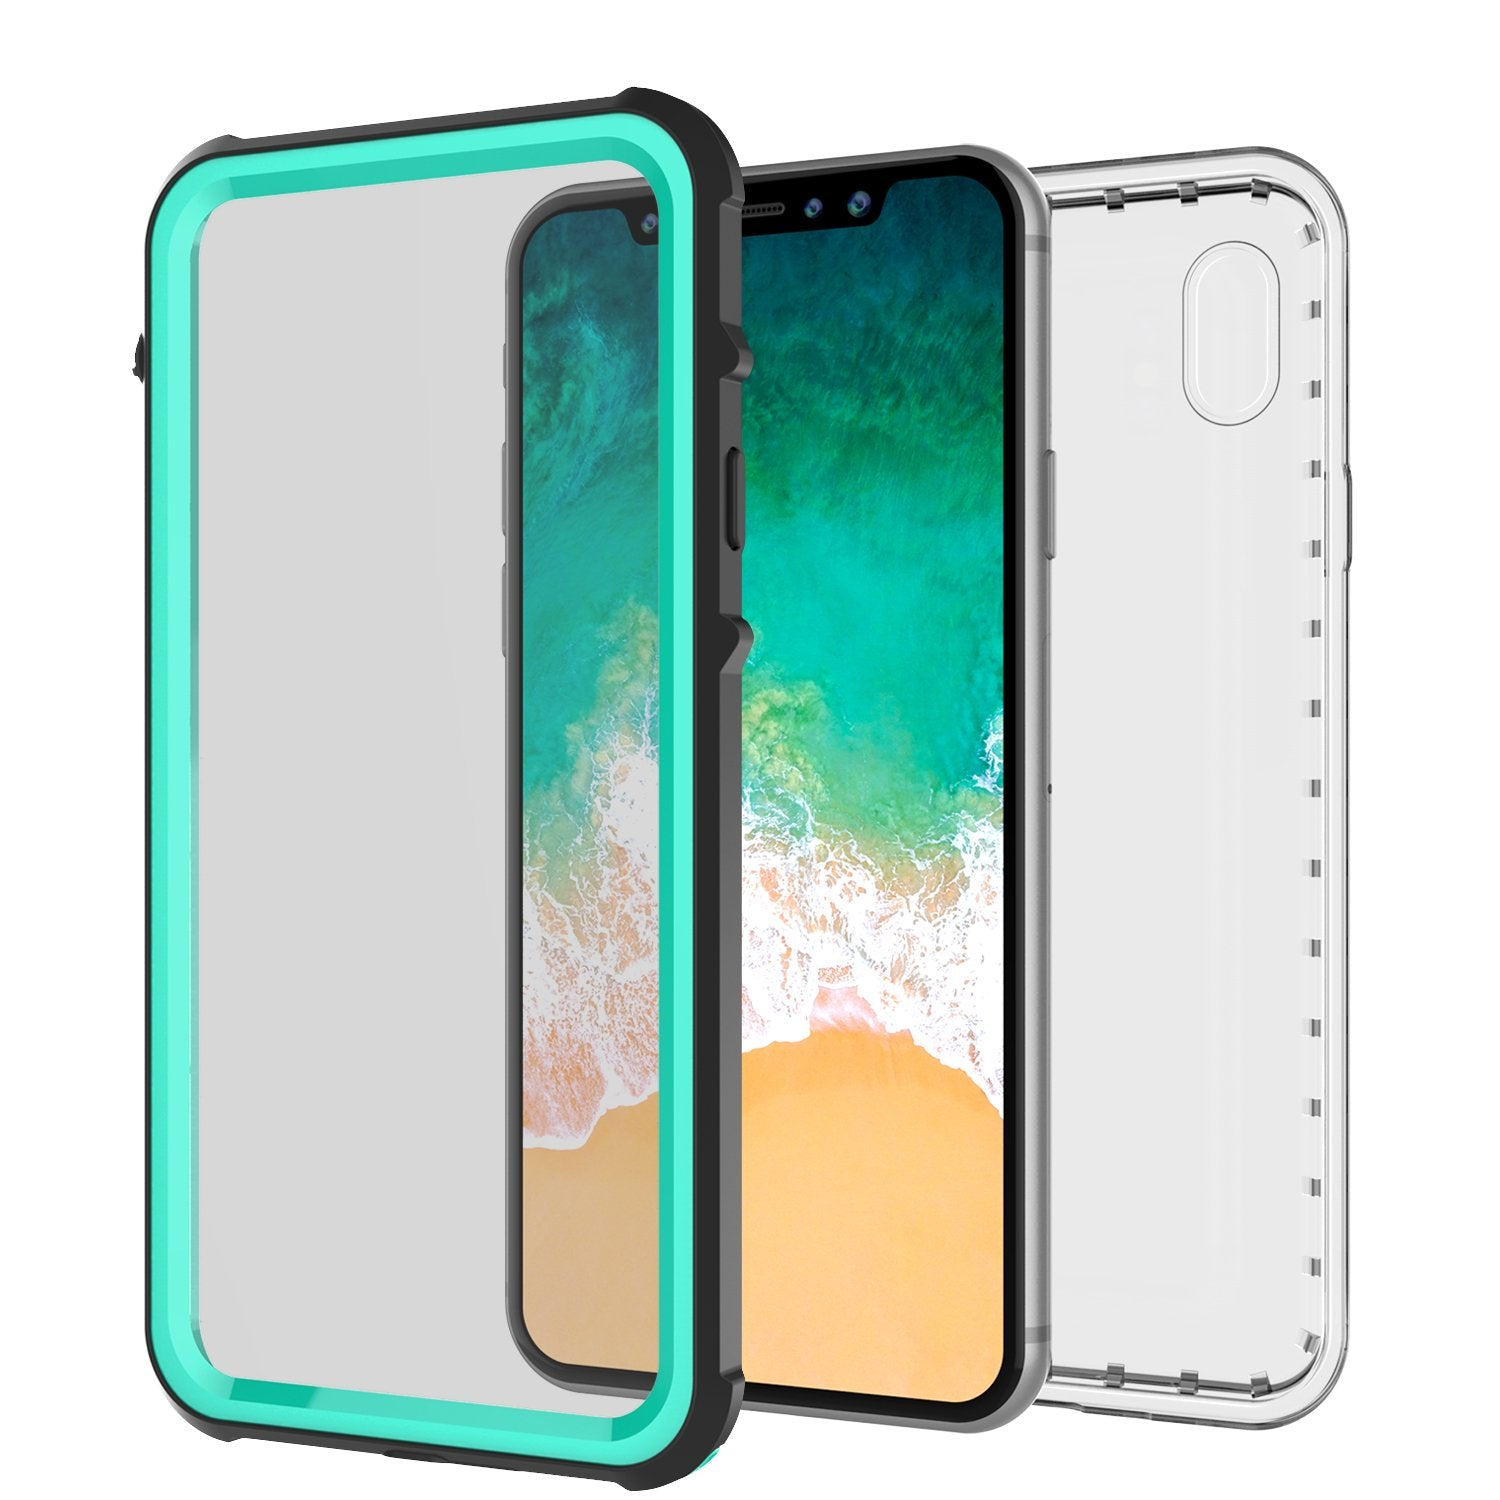 iPhone X Case, PUNKCase [CRYSTAL SERIES] Protective IP68 Certified, Ultra Slim Fit [TEAL] - PunkCase NZ